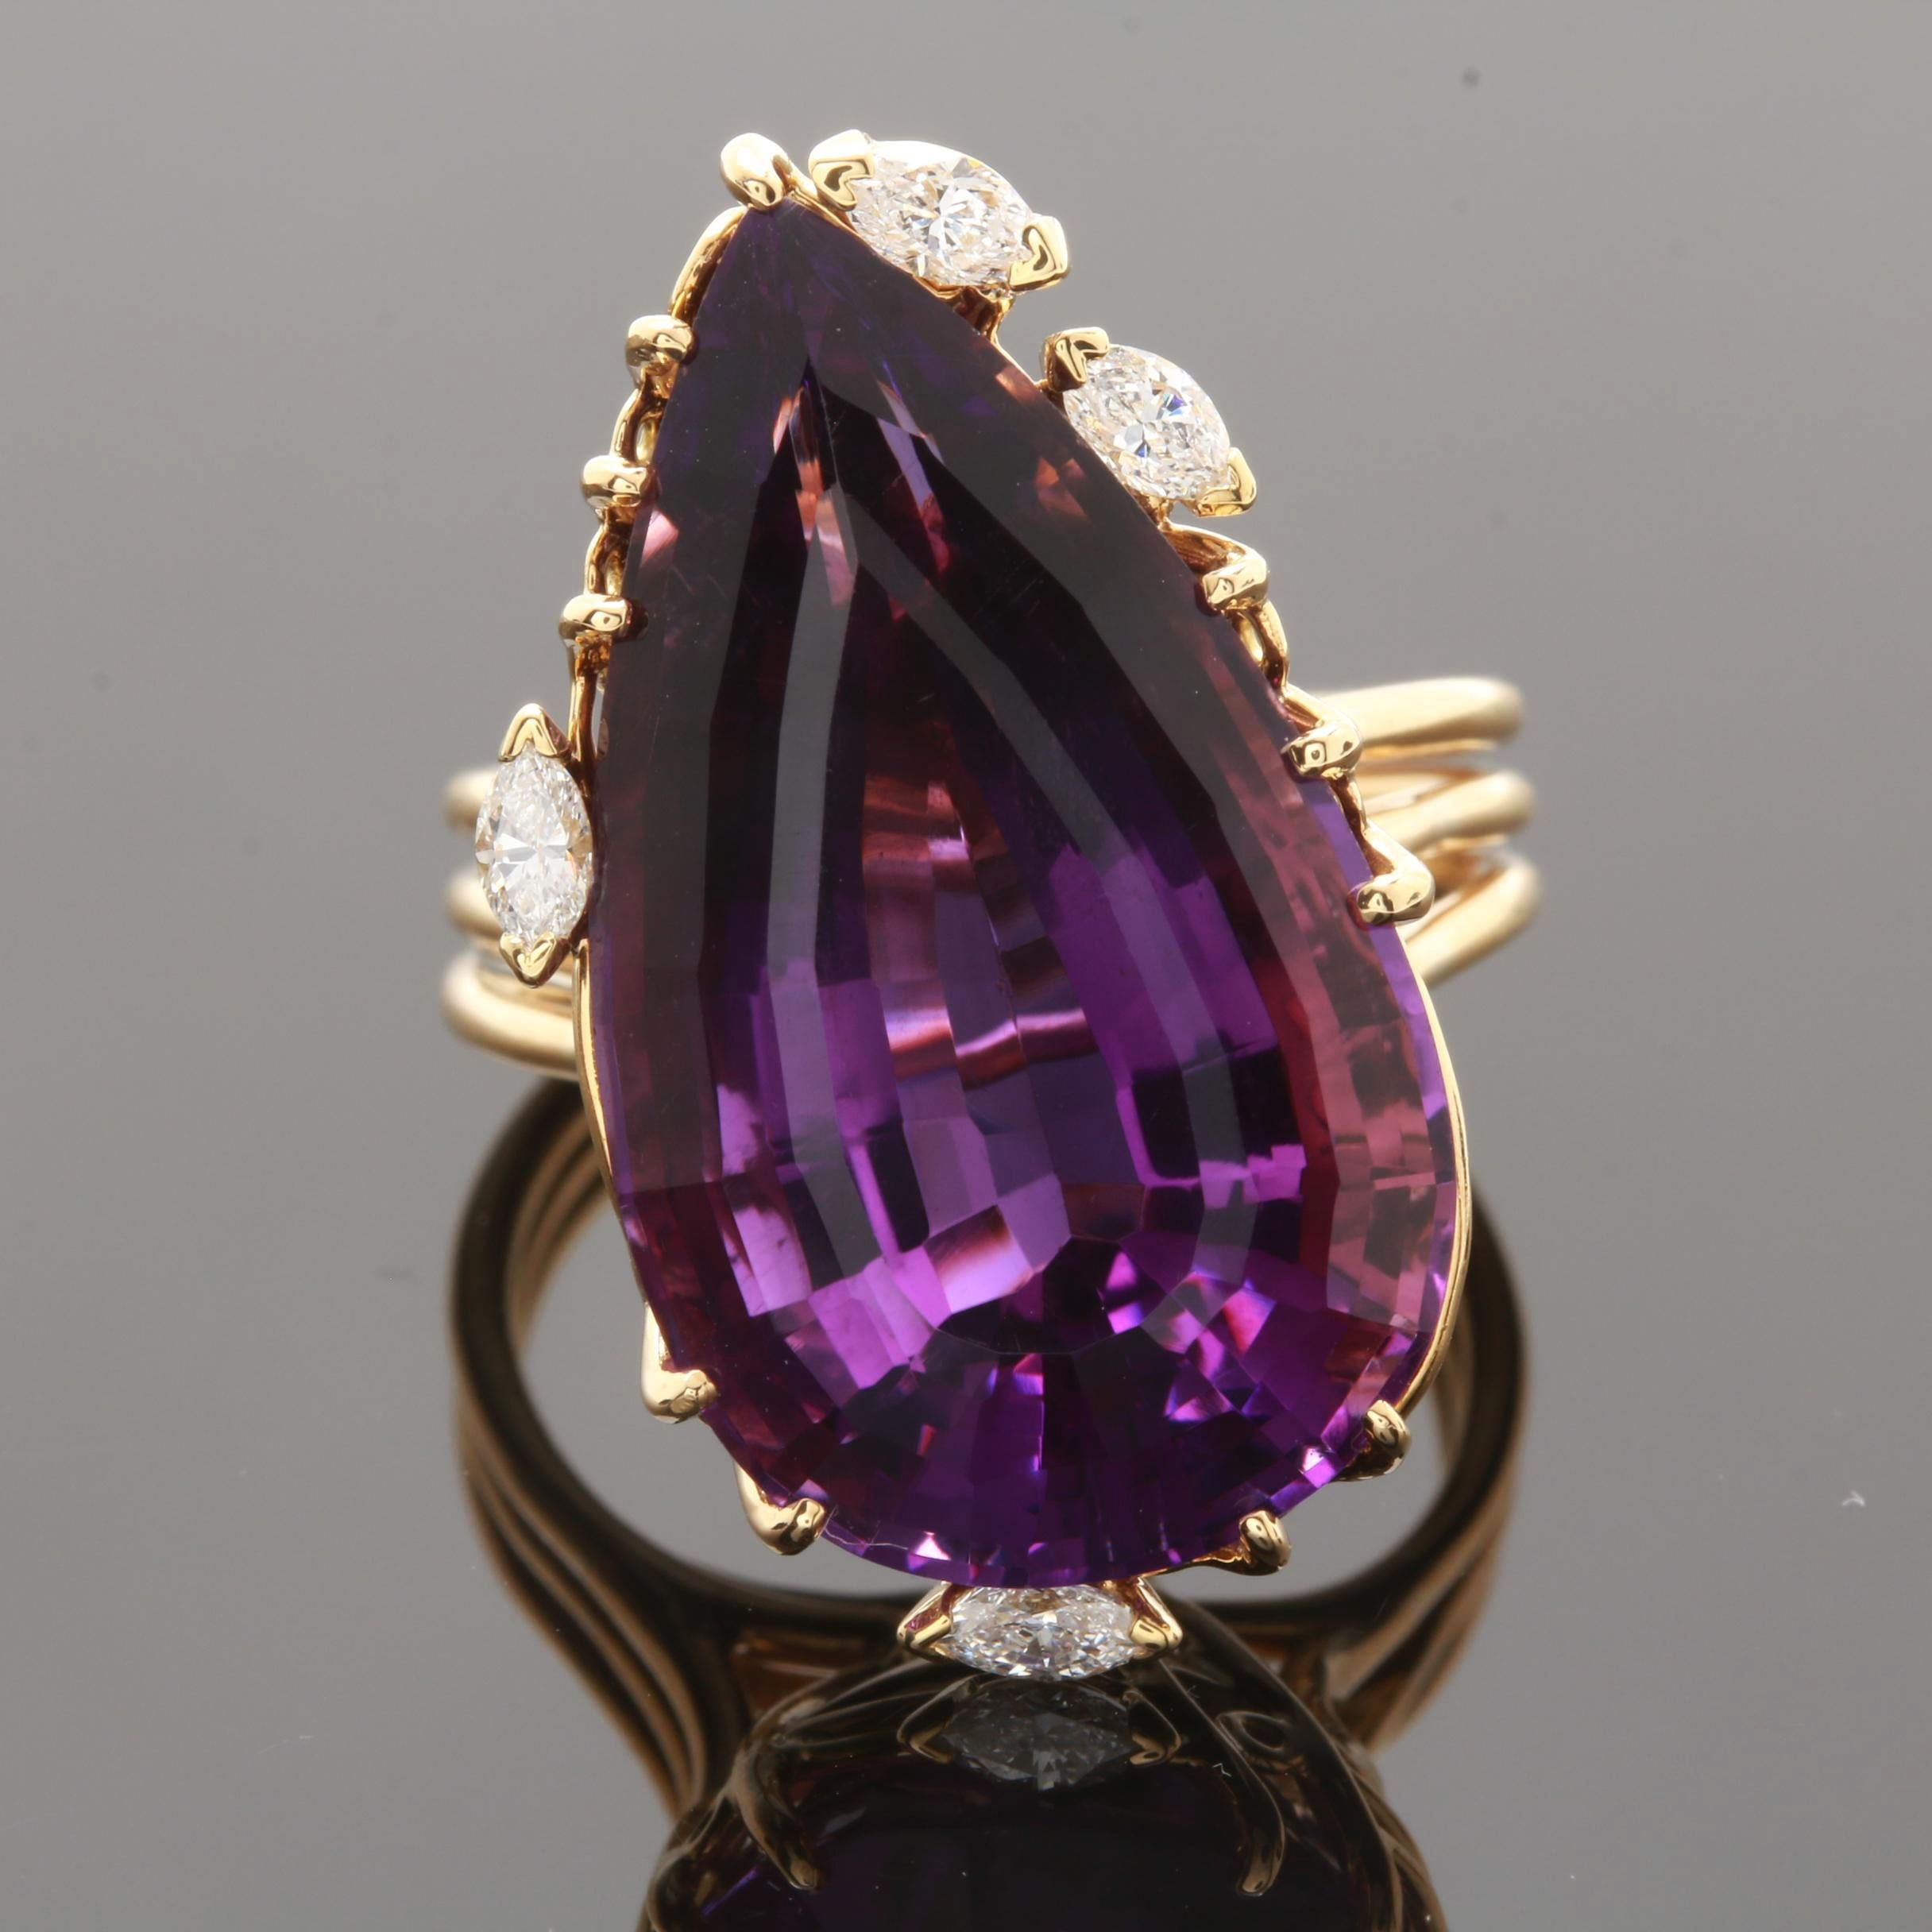 18K Yellow Gold 18.38 CT Amethyst and Diamond Ring